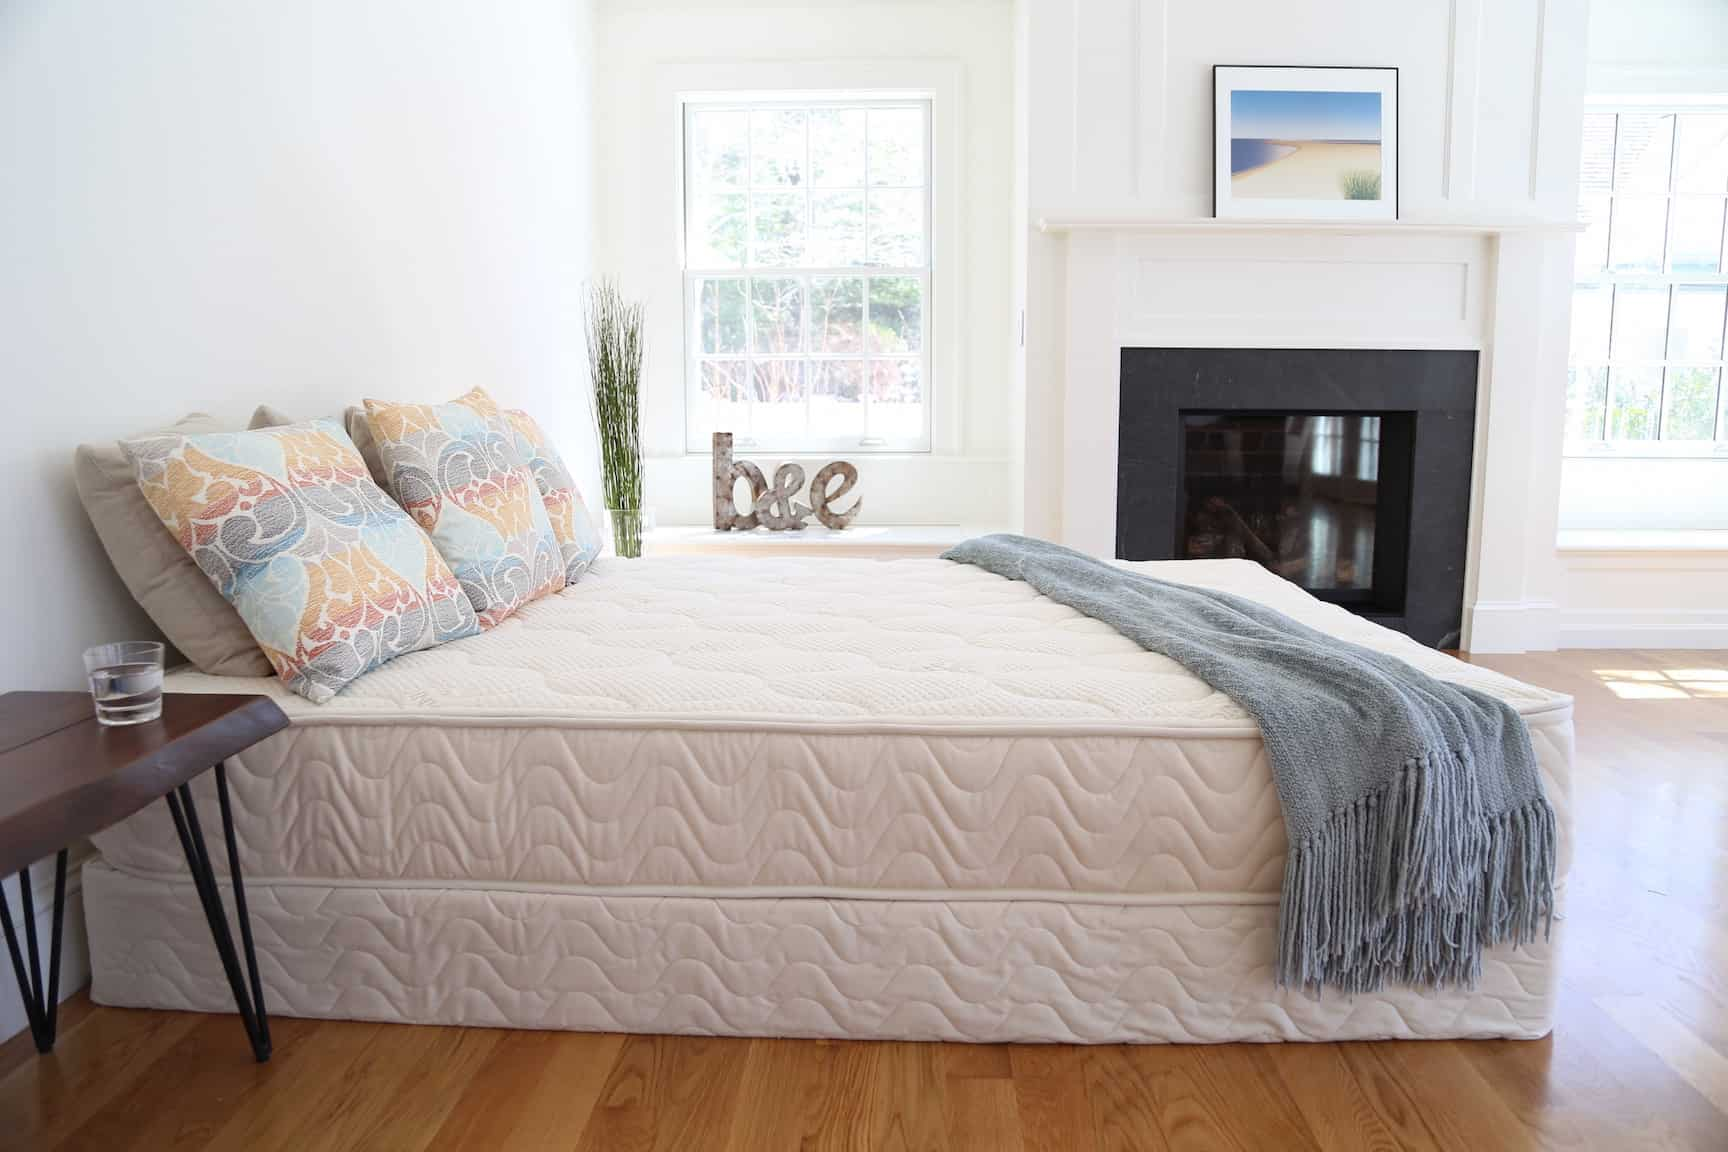 Top 5 Best Mattresses For Guide And Reviews